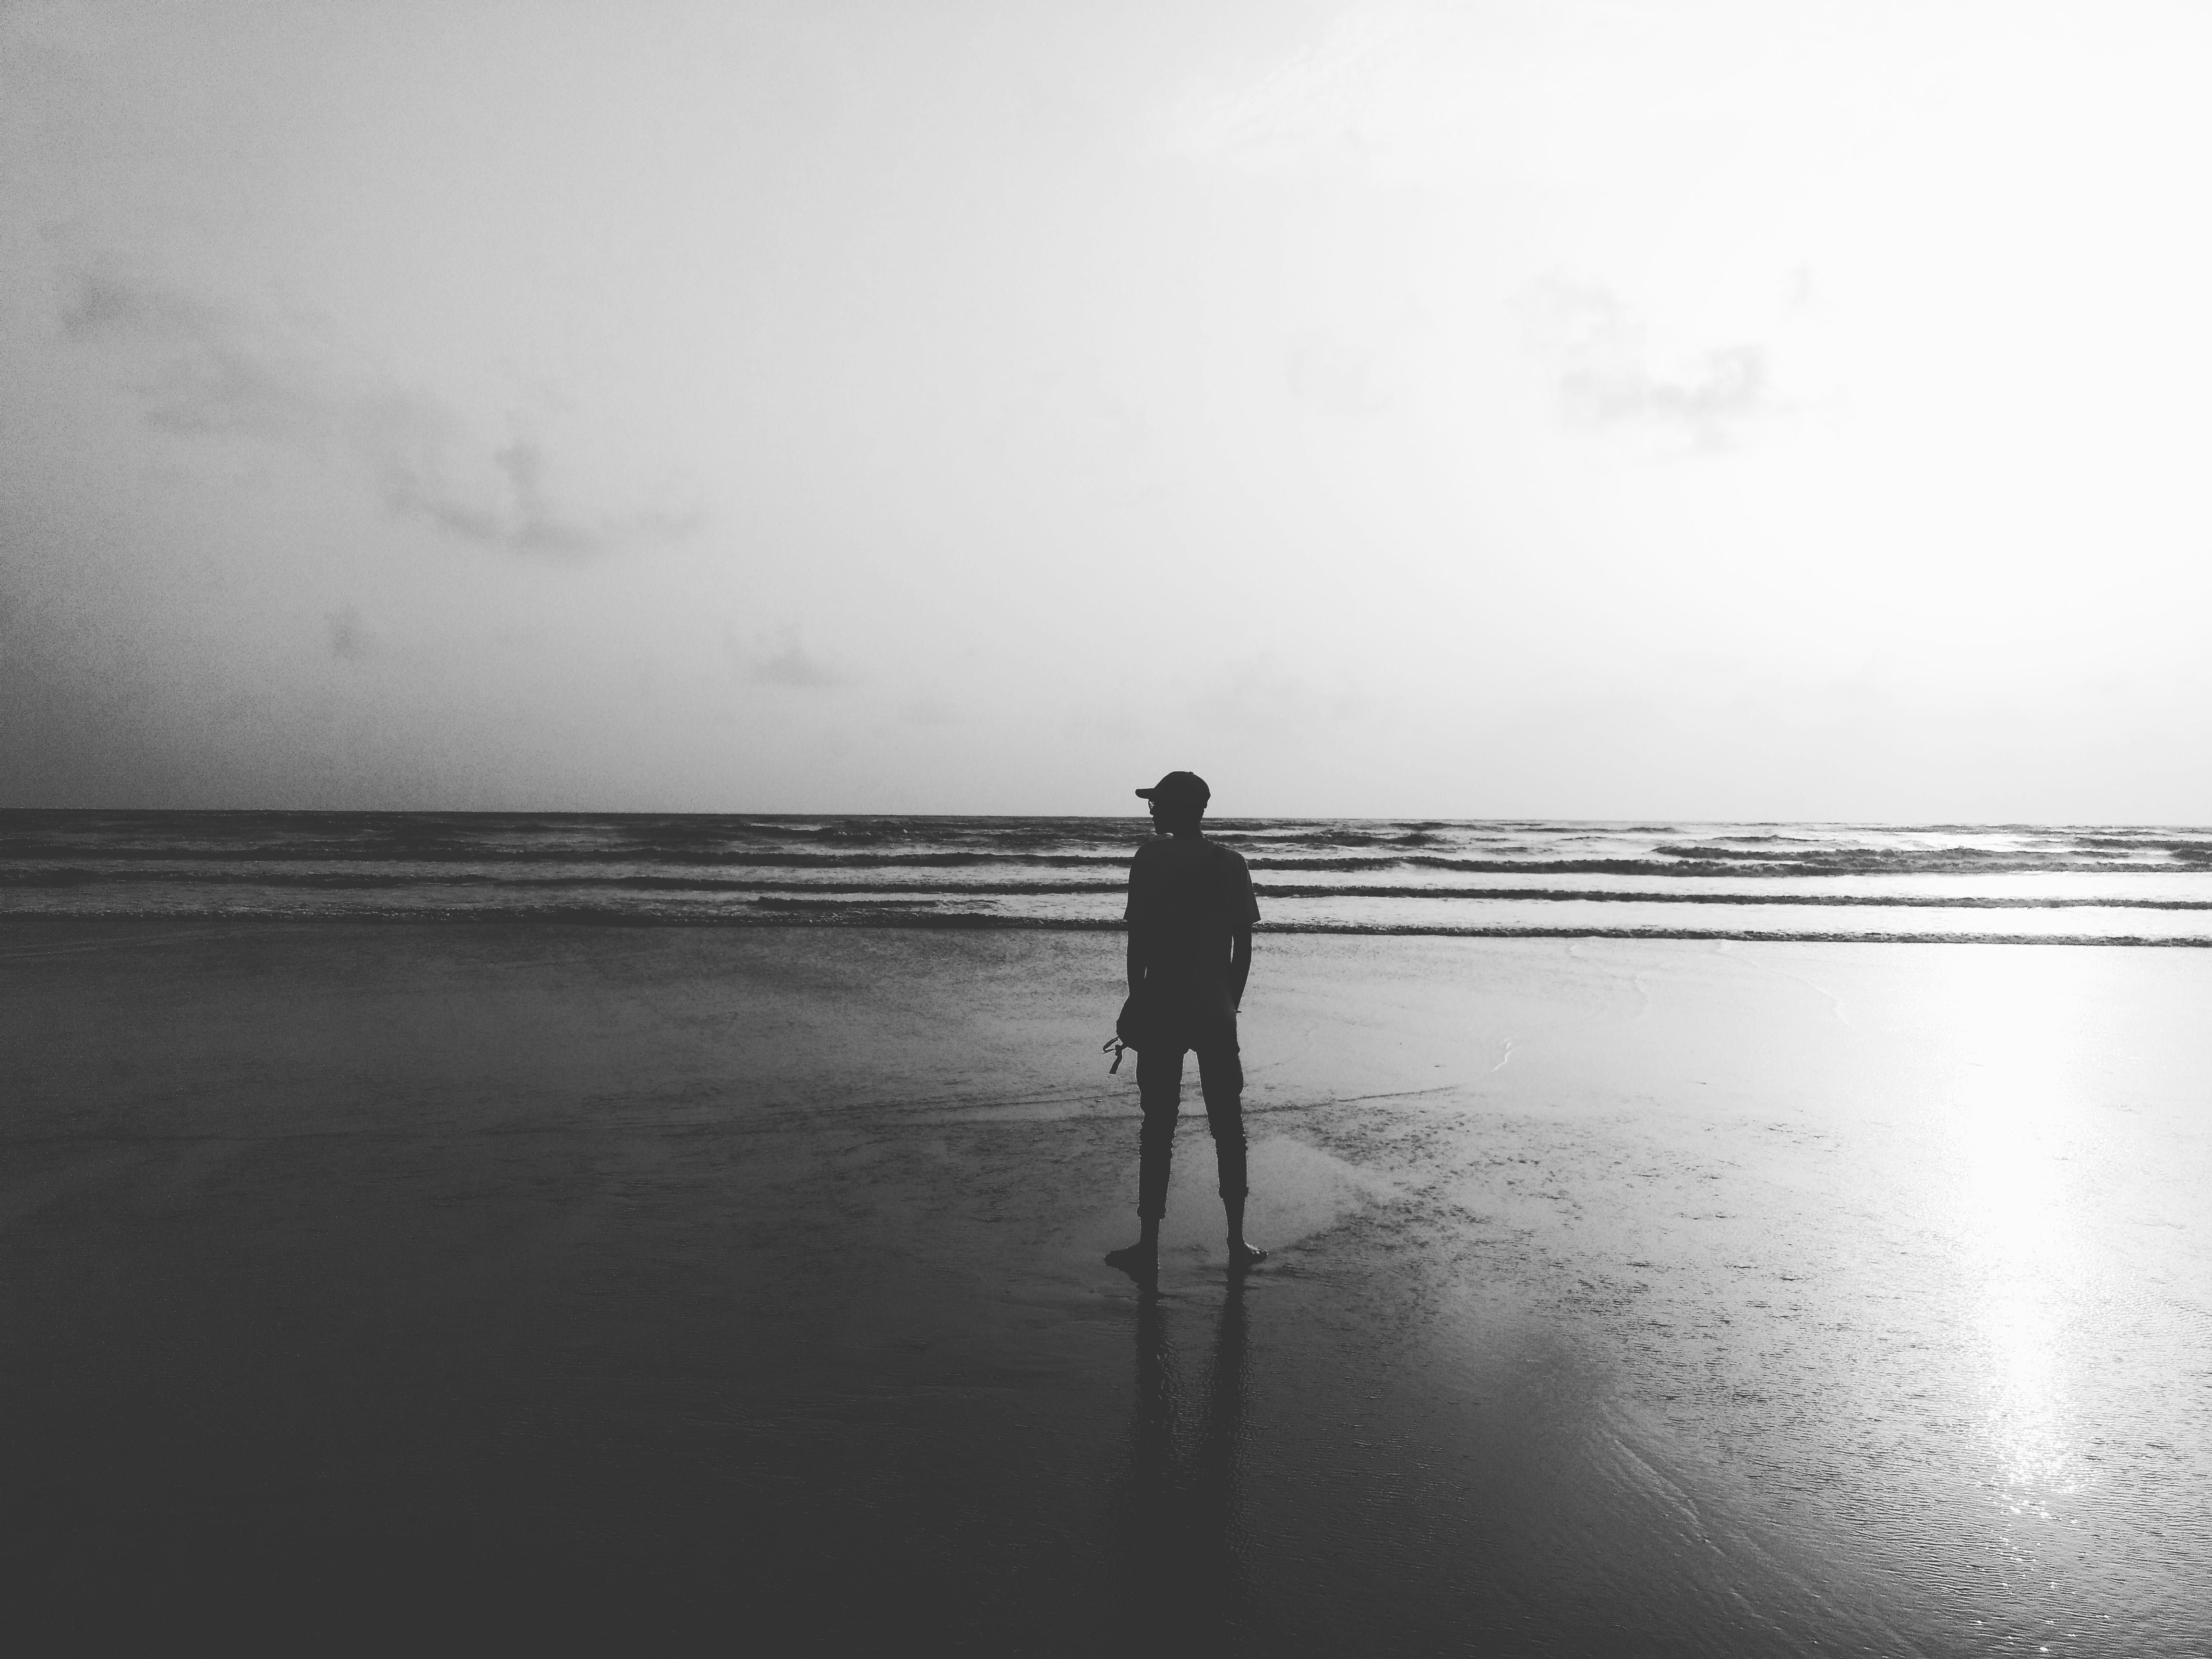 Free stock photo of beach, black and white, HD wallpaper, shades